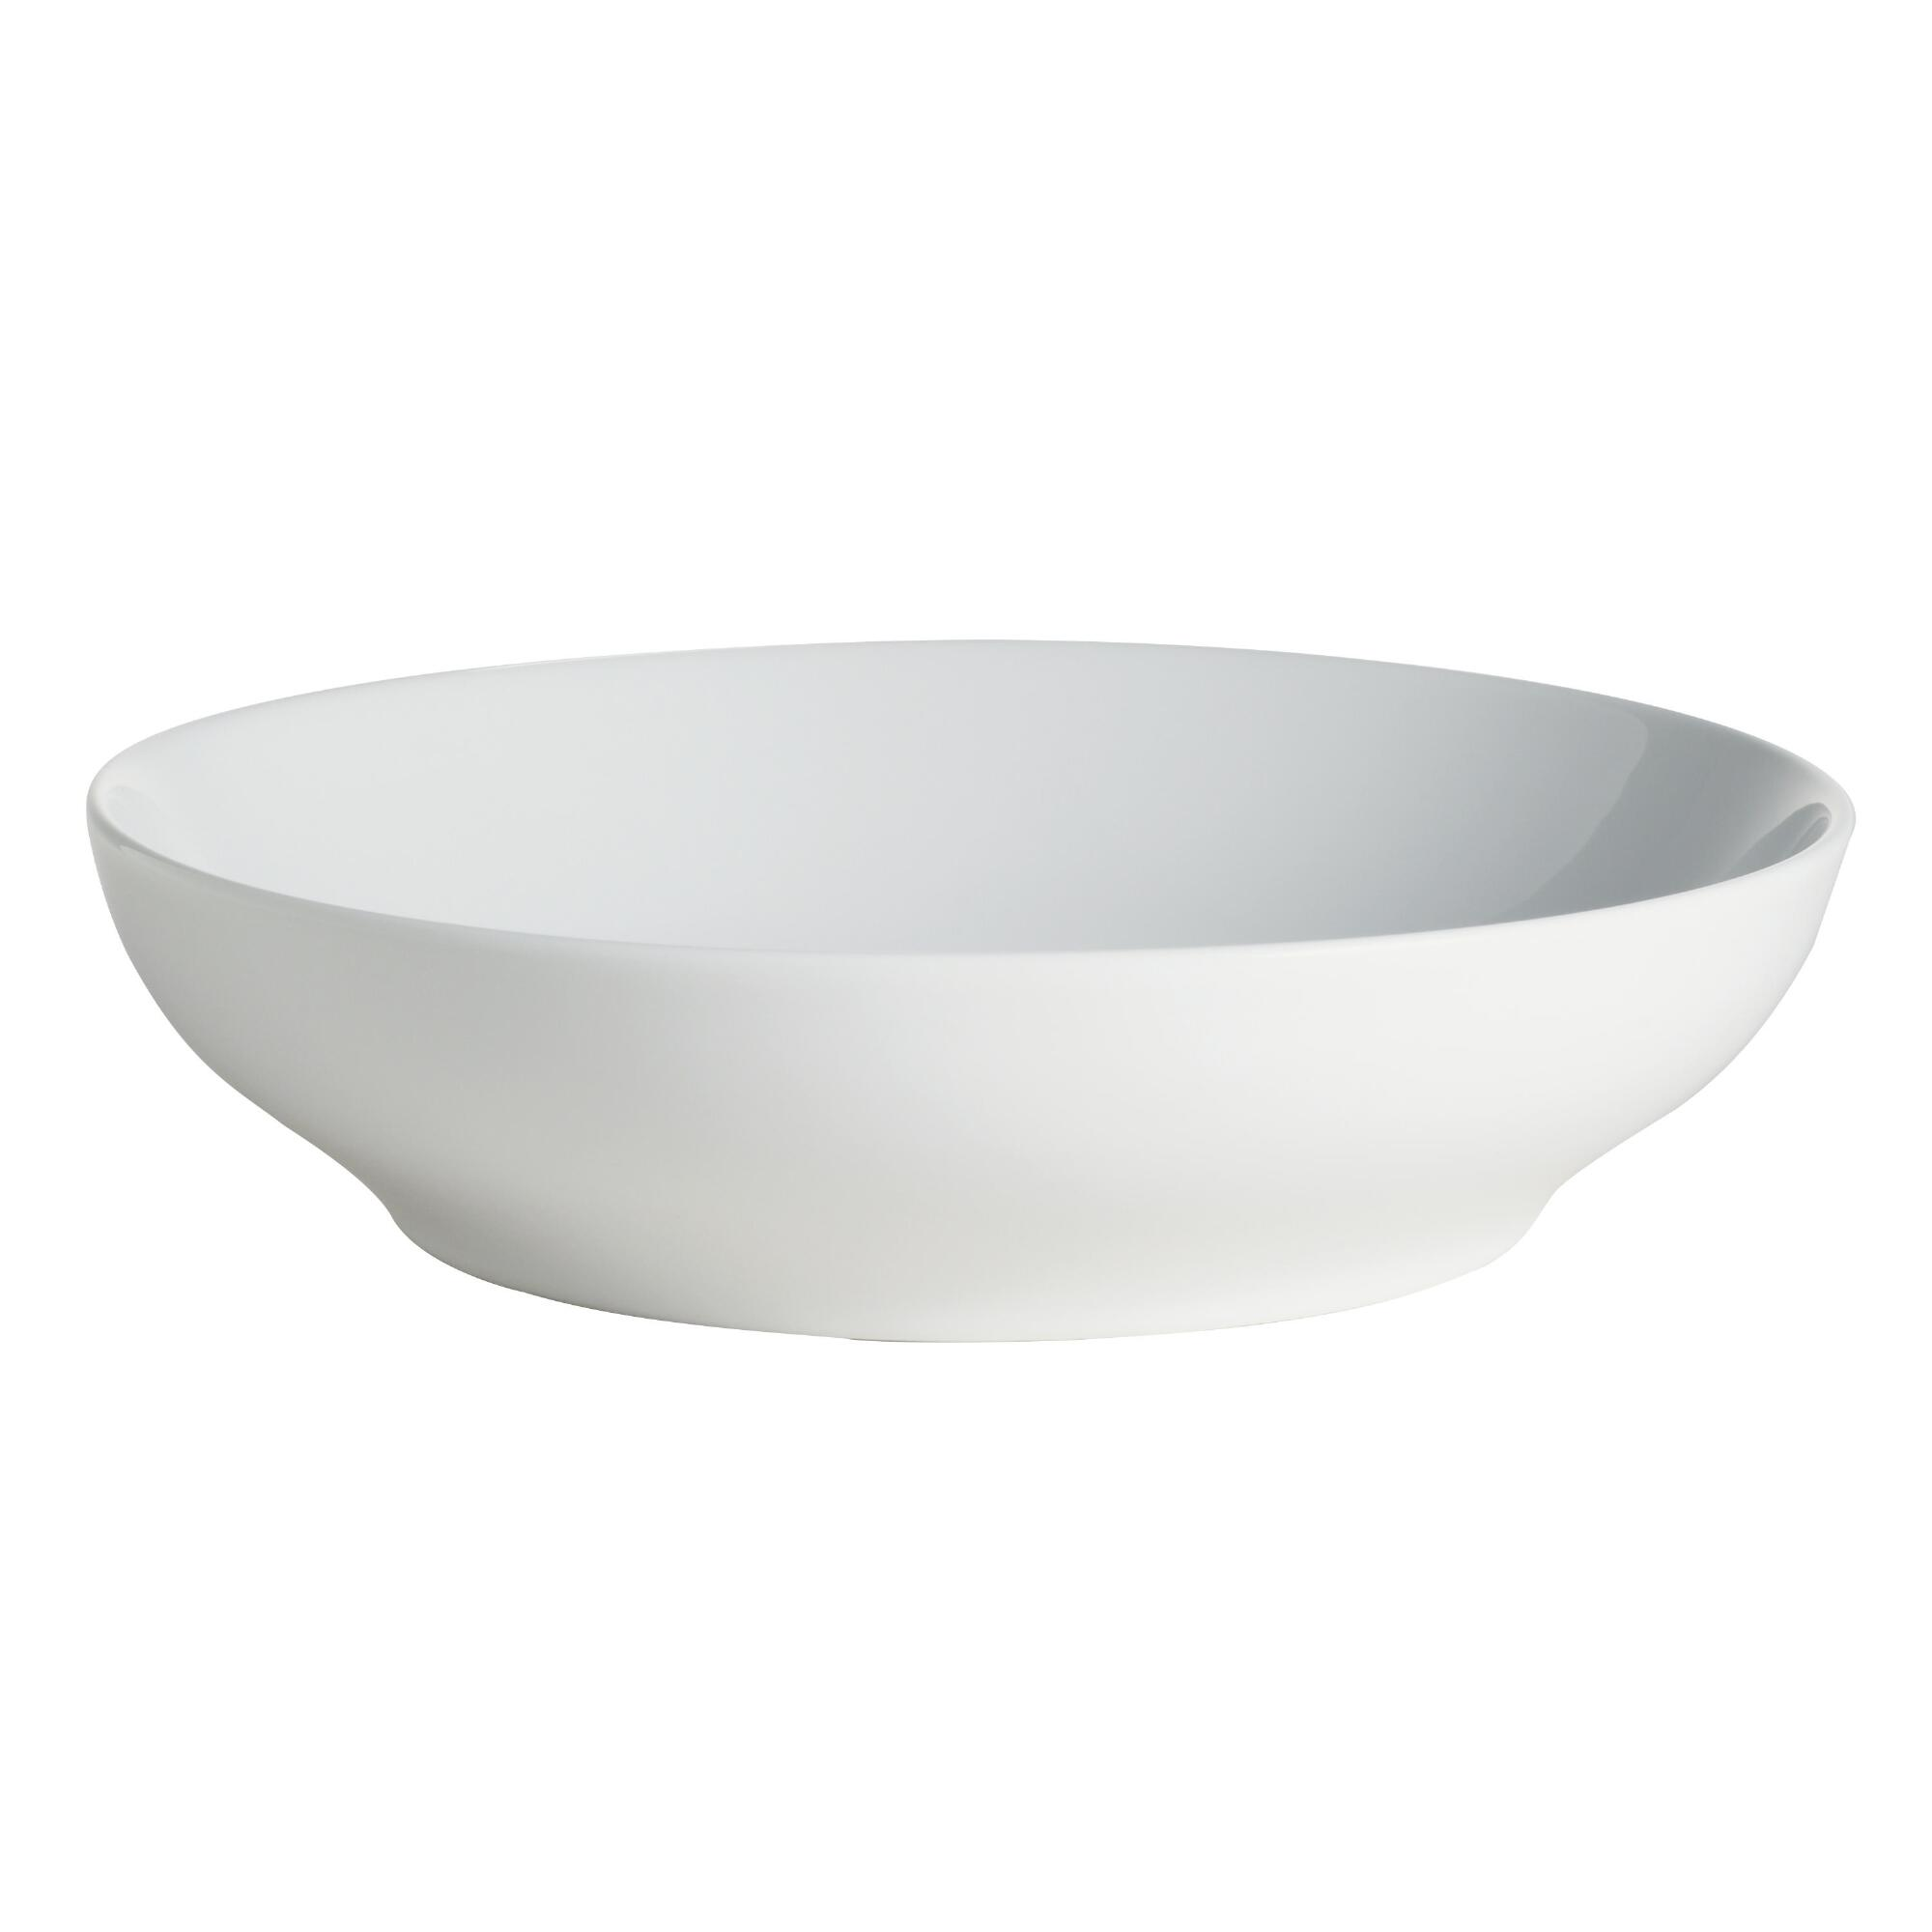 White Spin Pasta Bowl Set of 4 - Porcelain by World Market